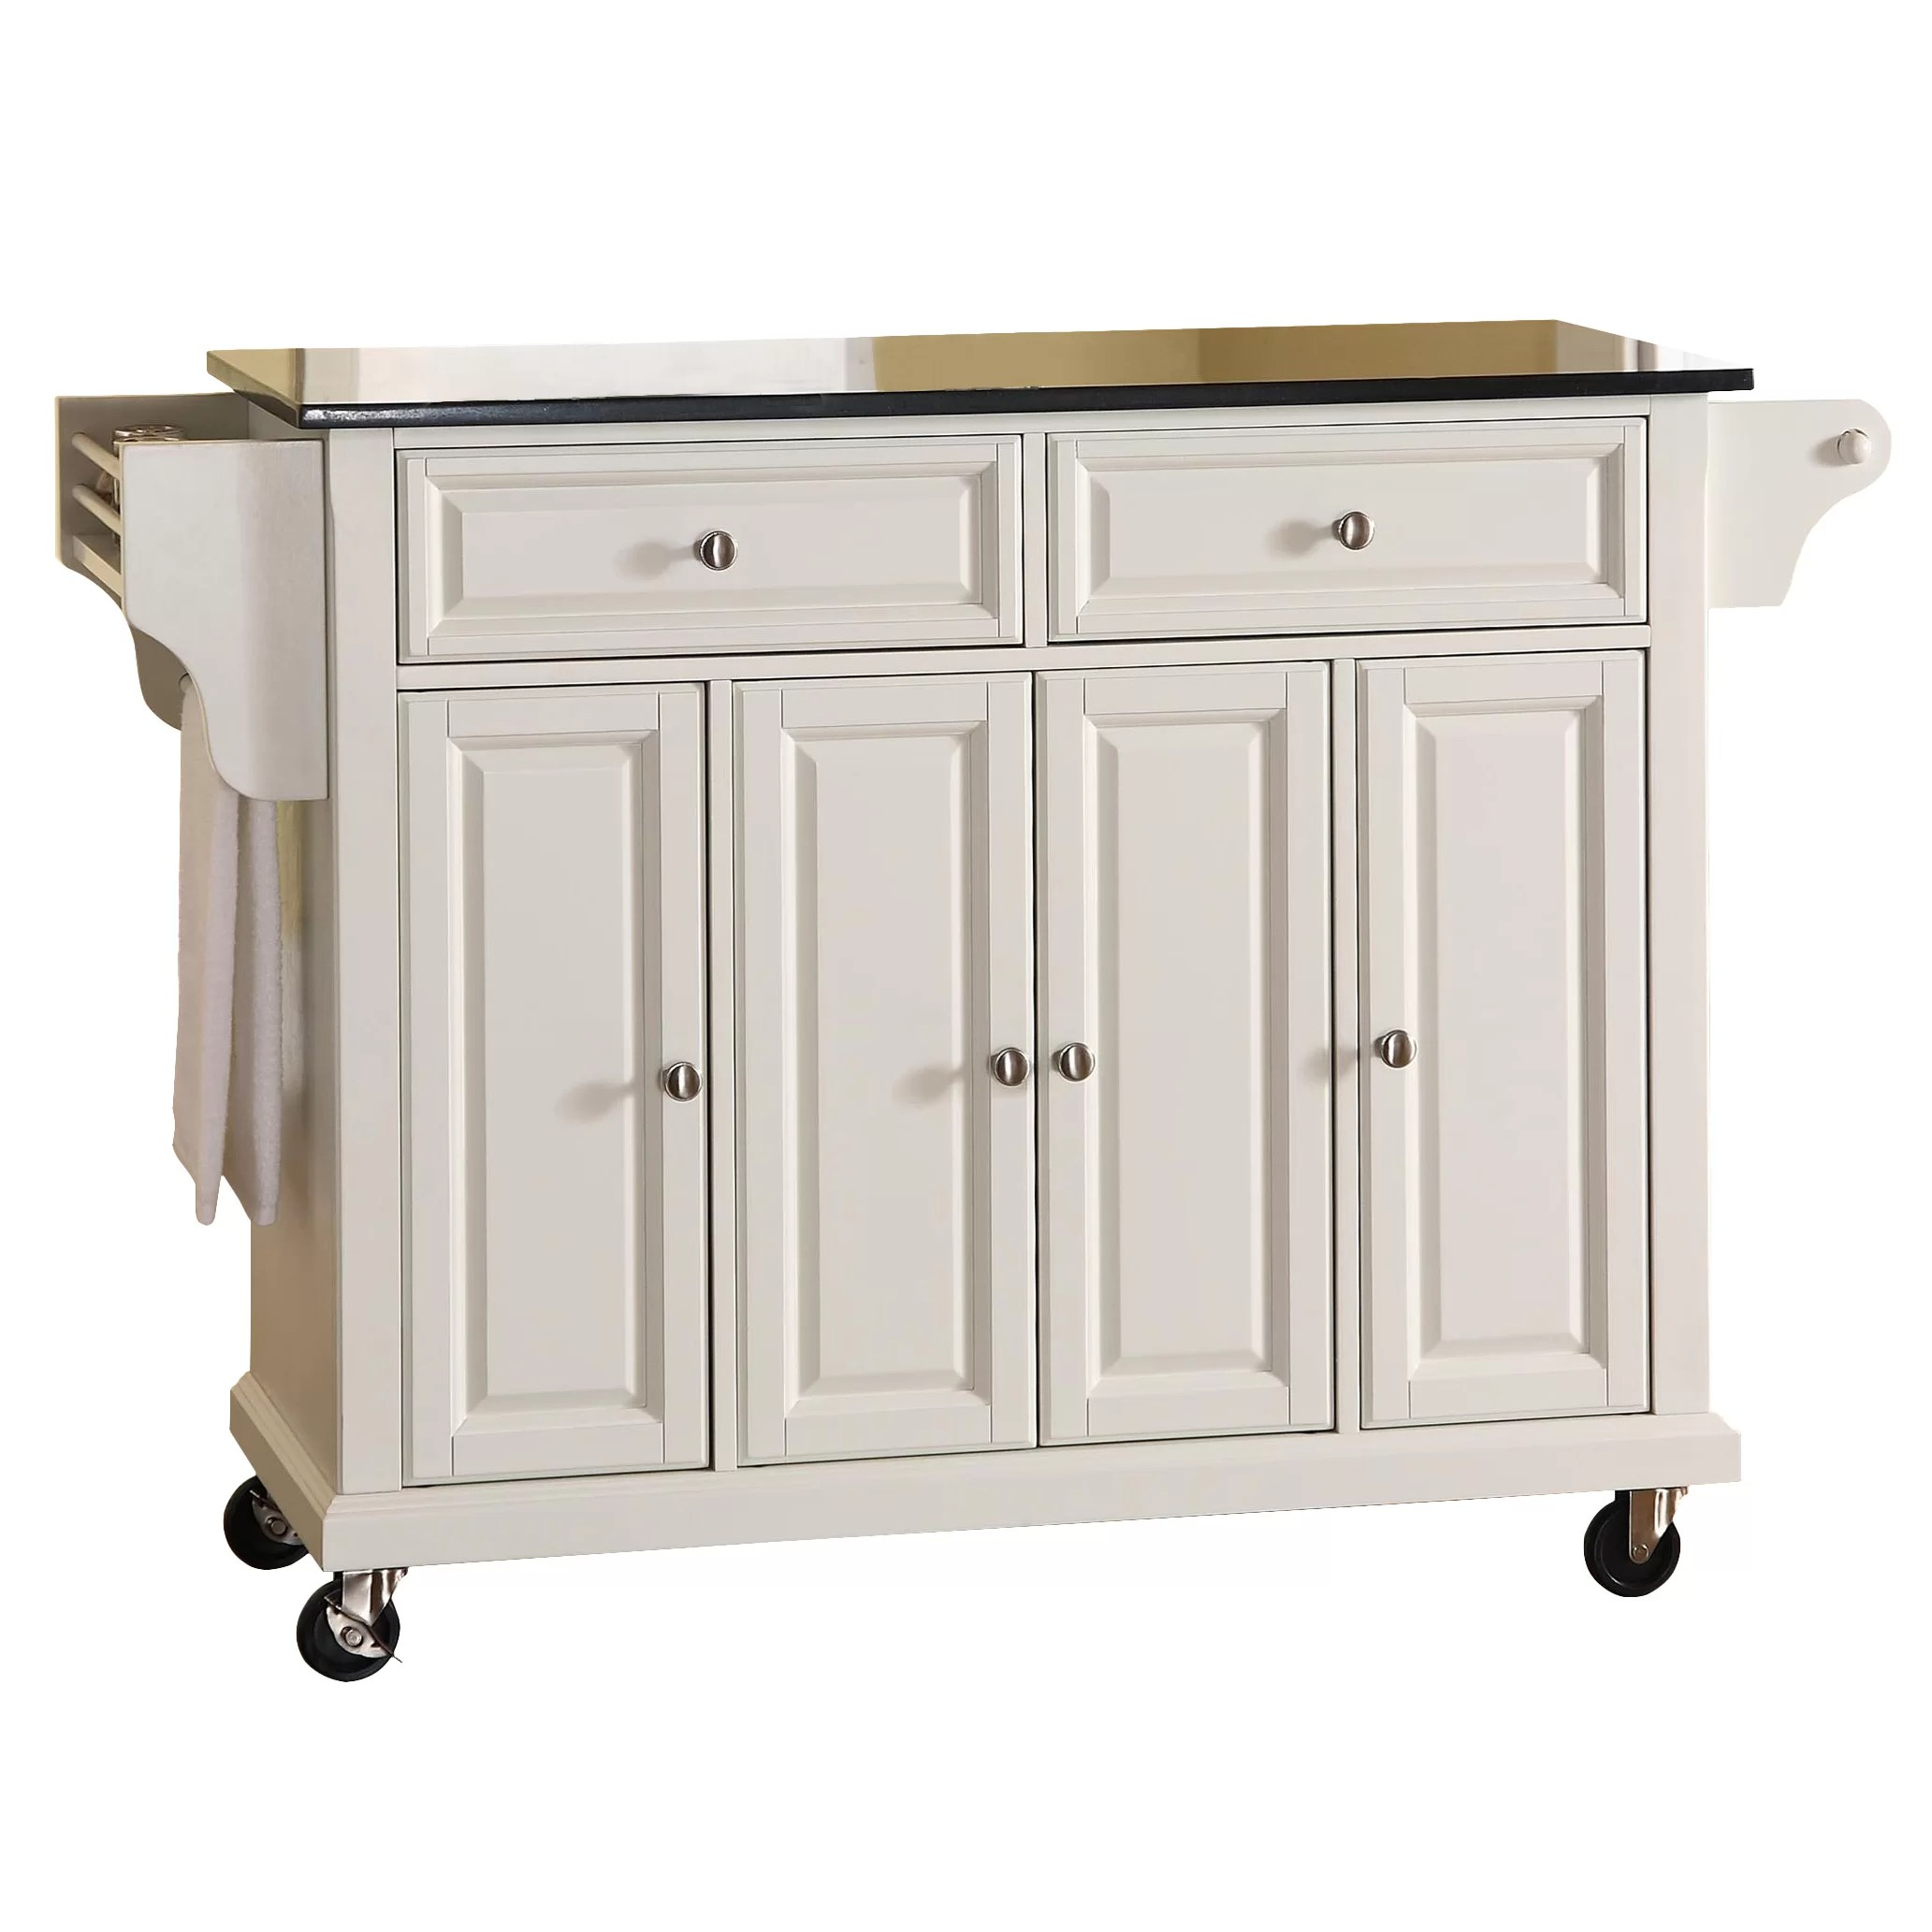 Granite Kitchen Islands Darby Home Co Pottstown Kitchen Island With Granite Top